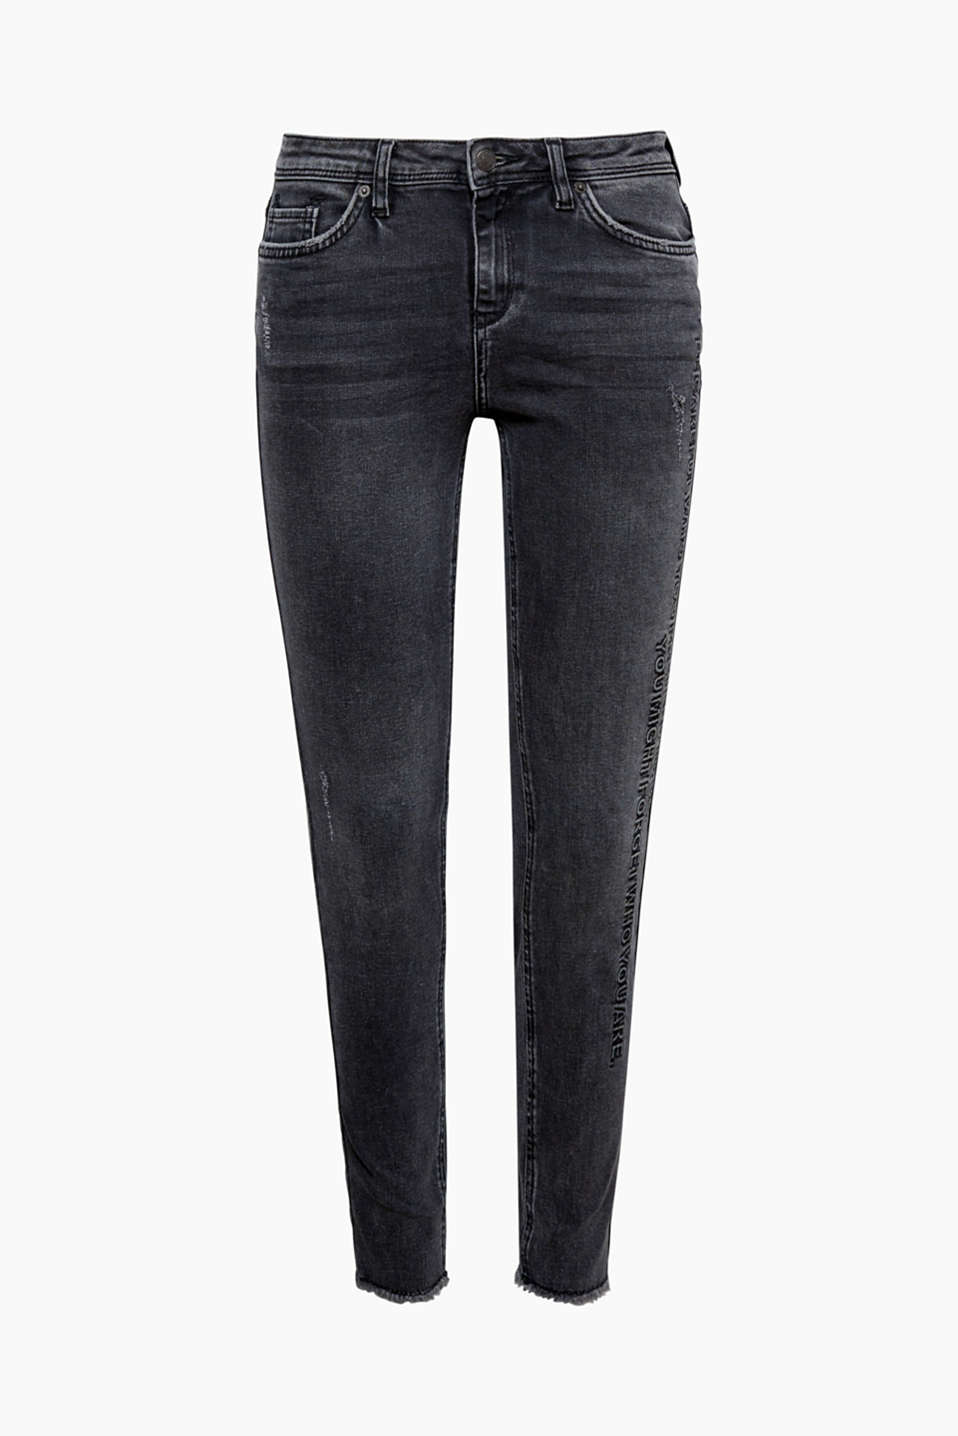 These skinny jeans with a statement in a flat/raised effect on the left leg is cool and in a rock style!